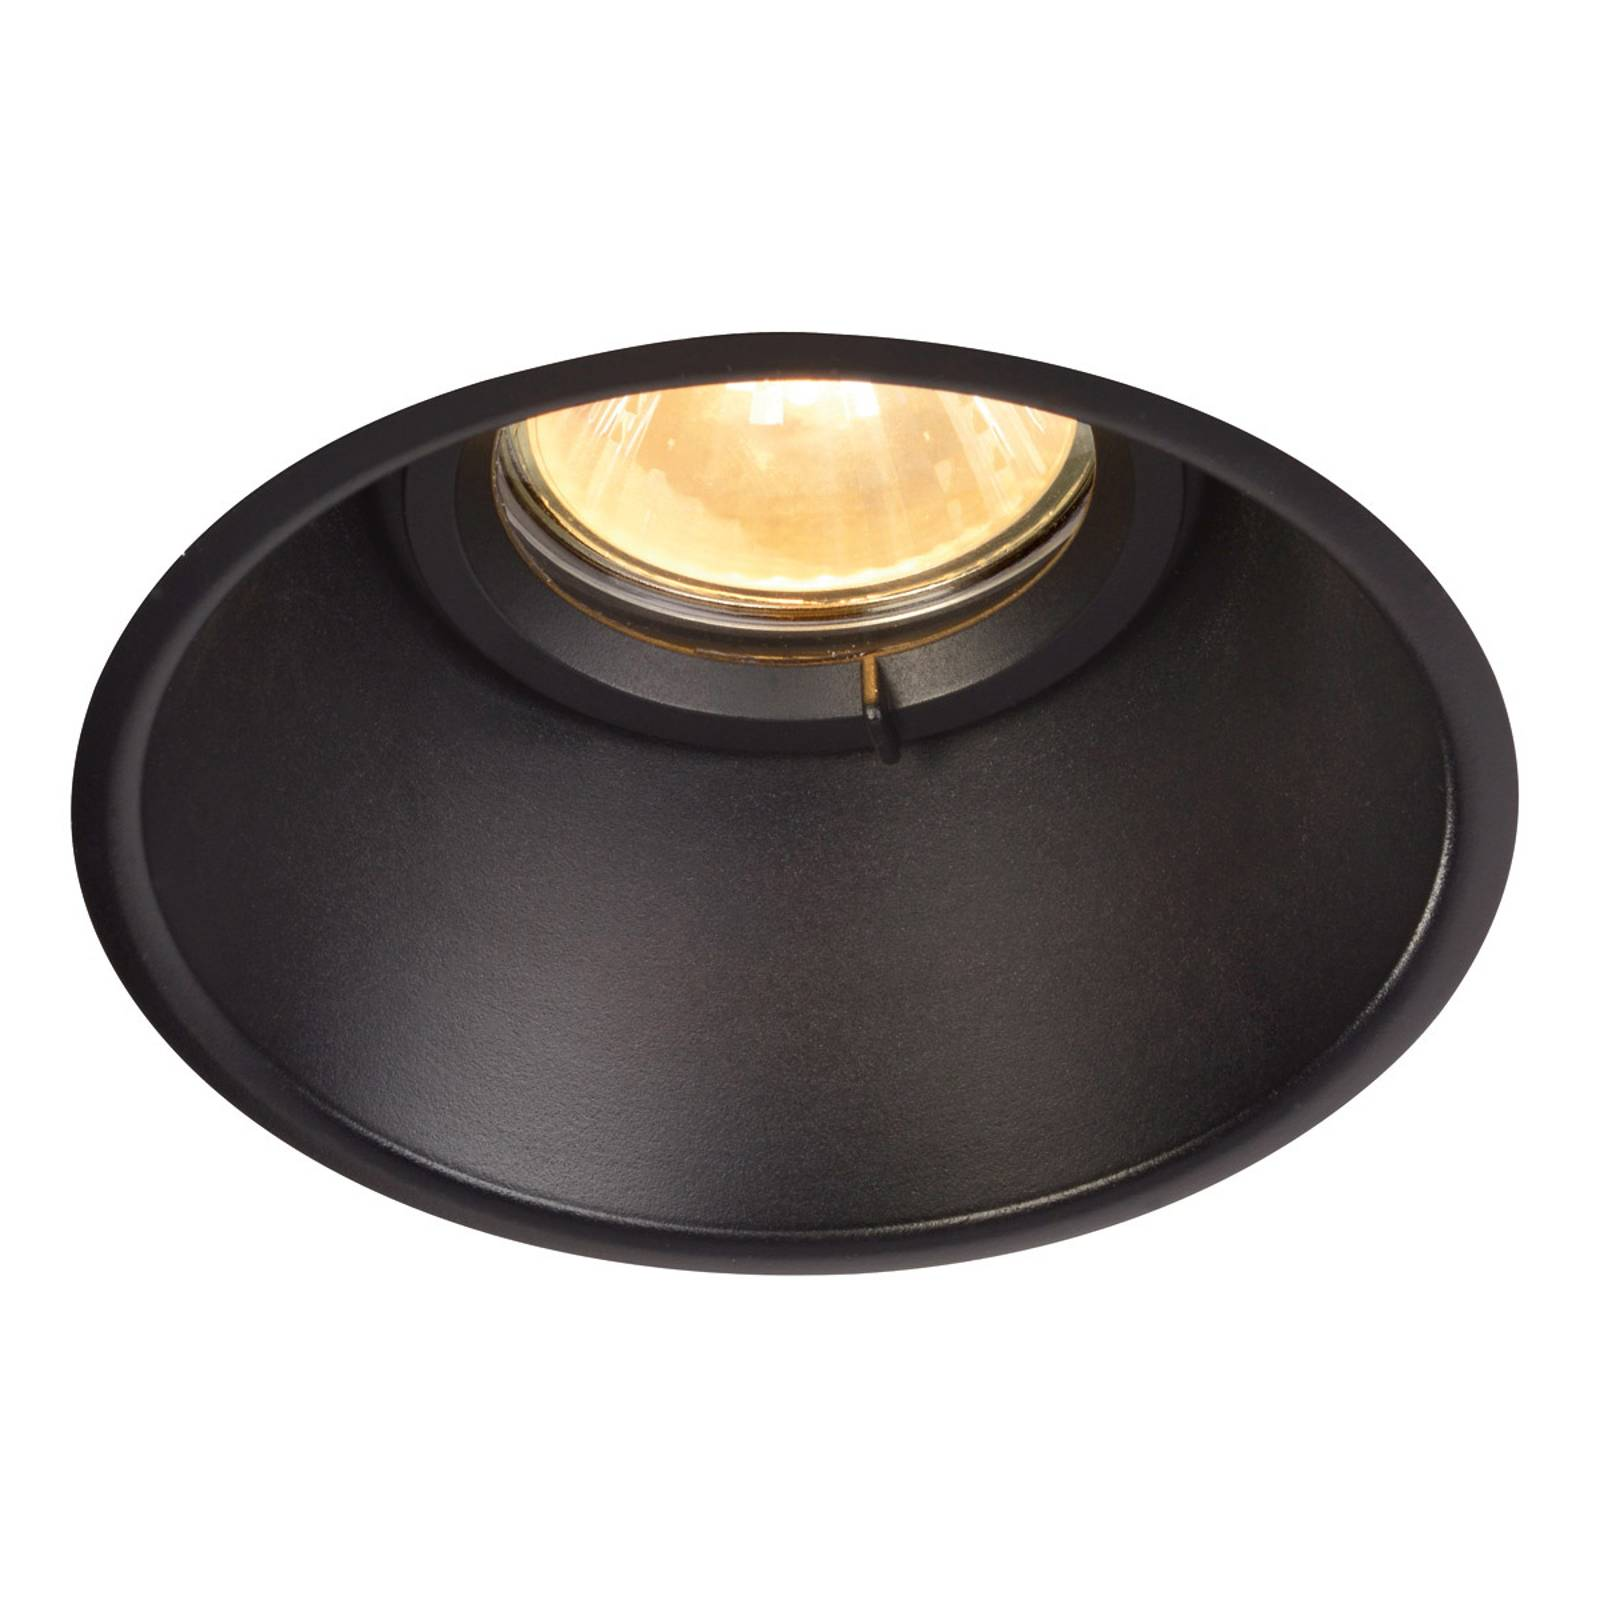 Inconspicuous Horn-O ceiling spotlight, black from SLV